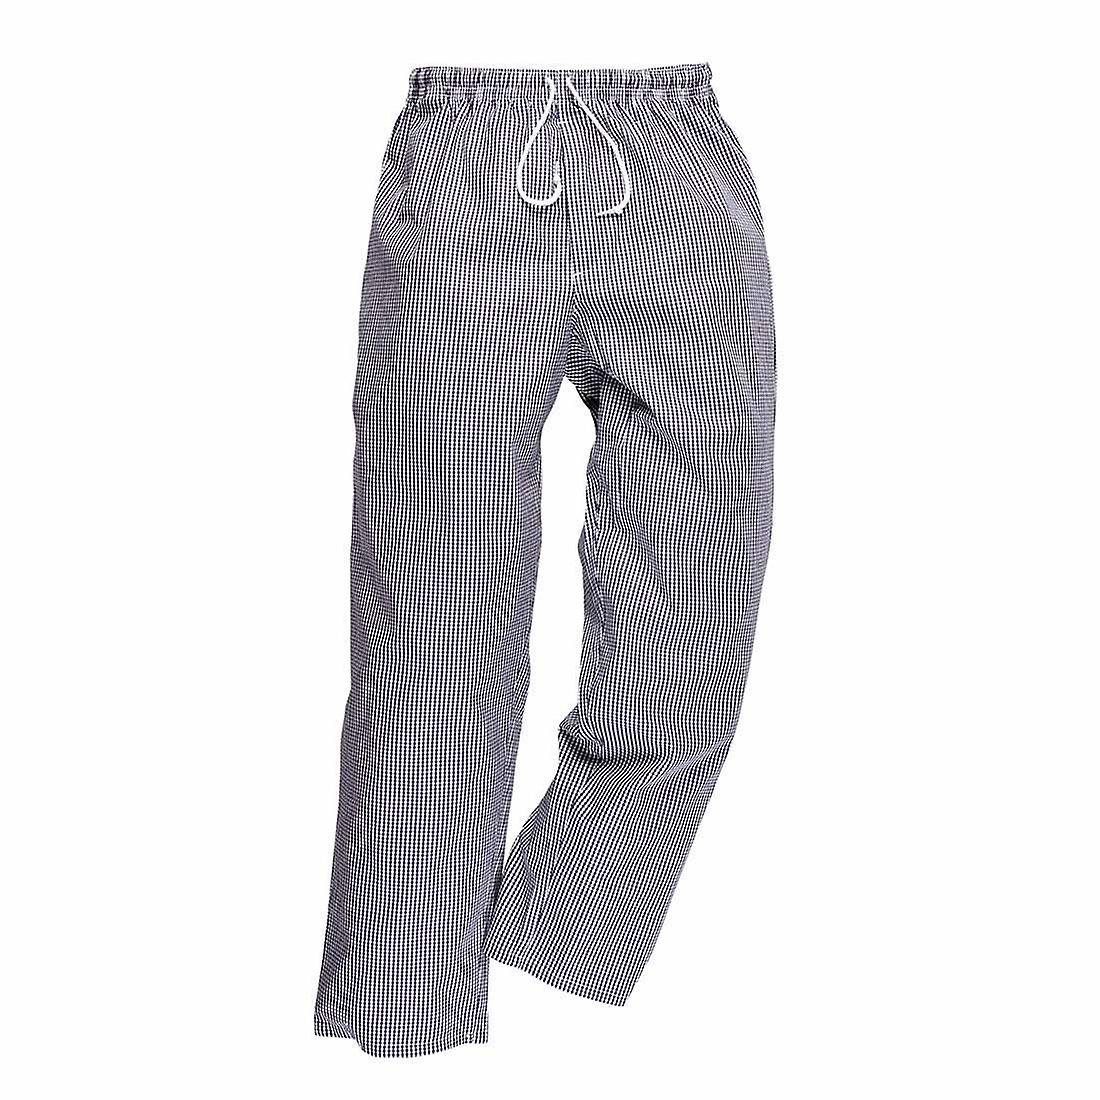 sUw - Mens Bromley Cotton Easy Fit Chefs Trousers